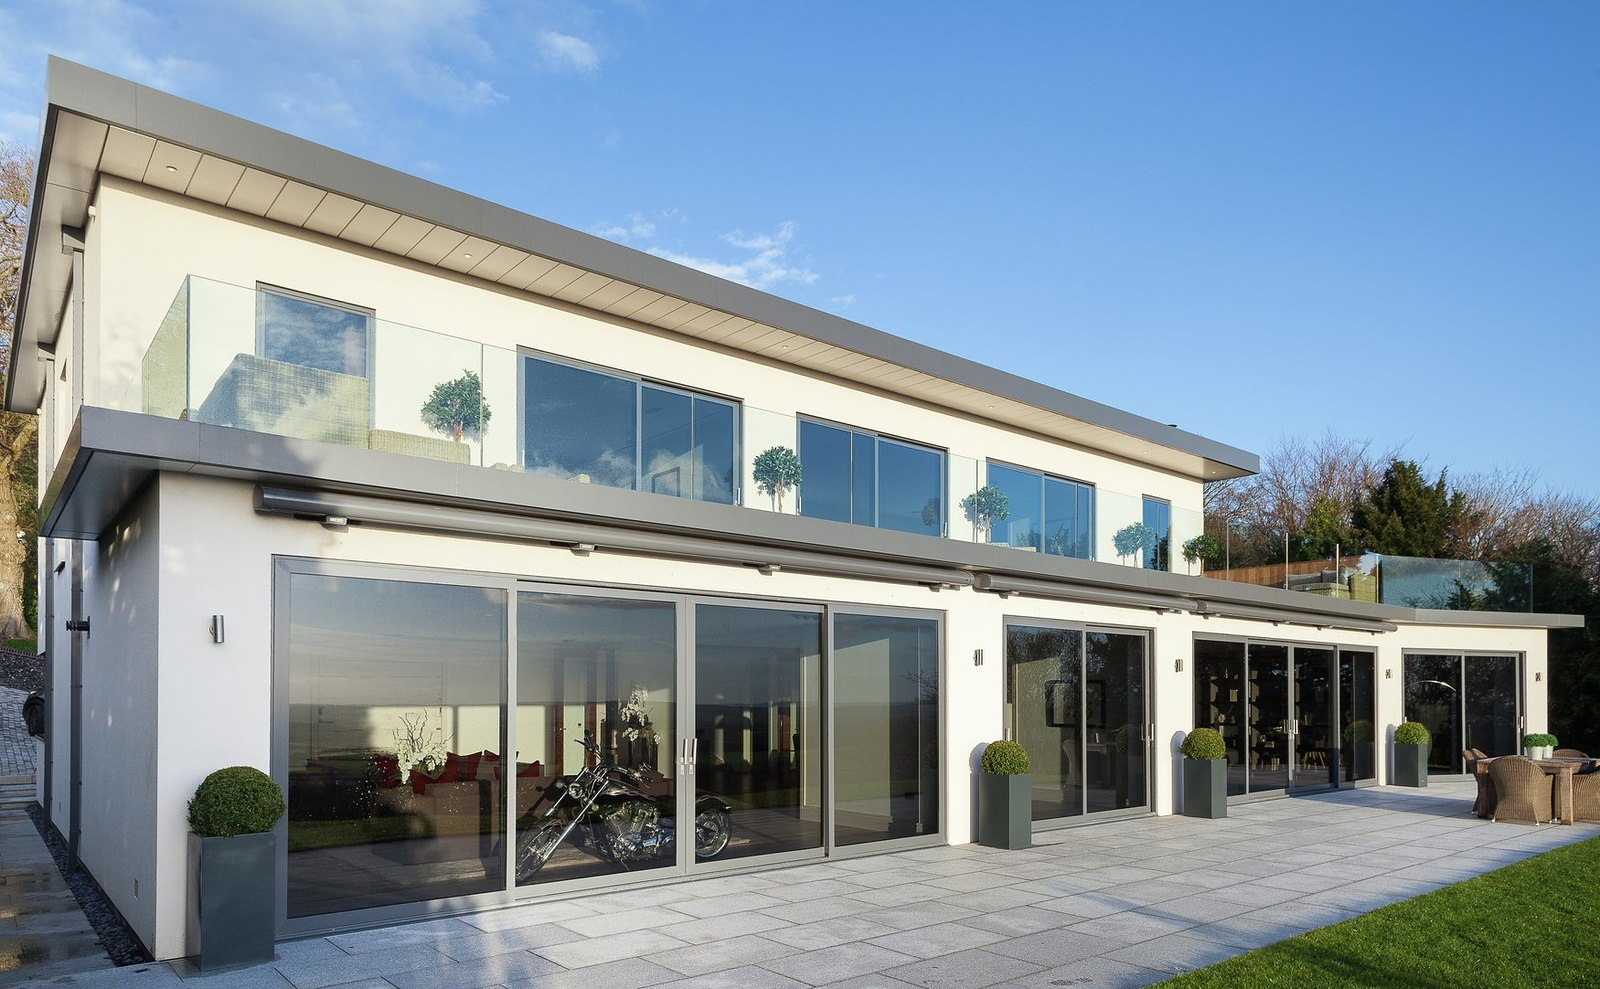 trevereux-hill-oxted-our-work-private-clients-ascot-design-view7.jpg